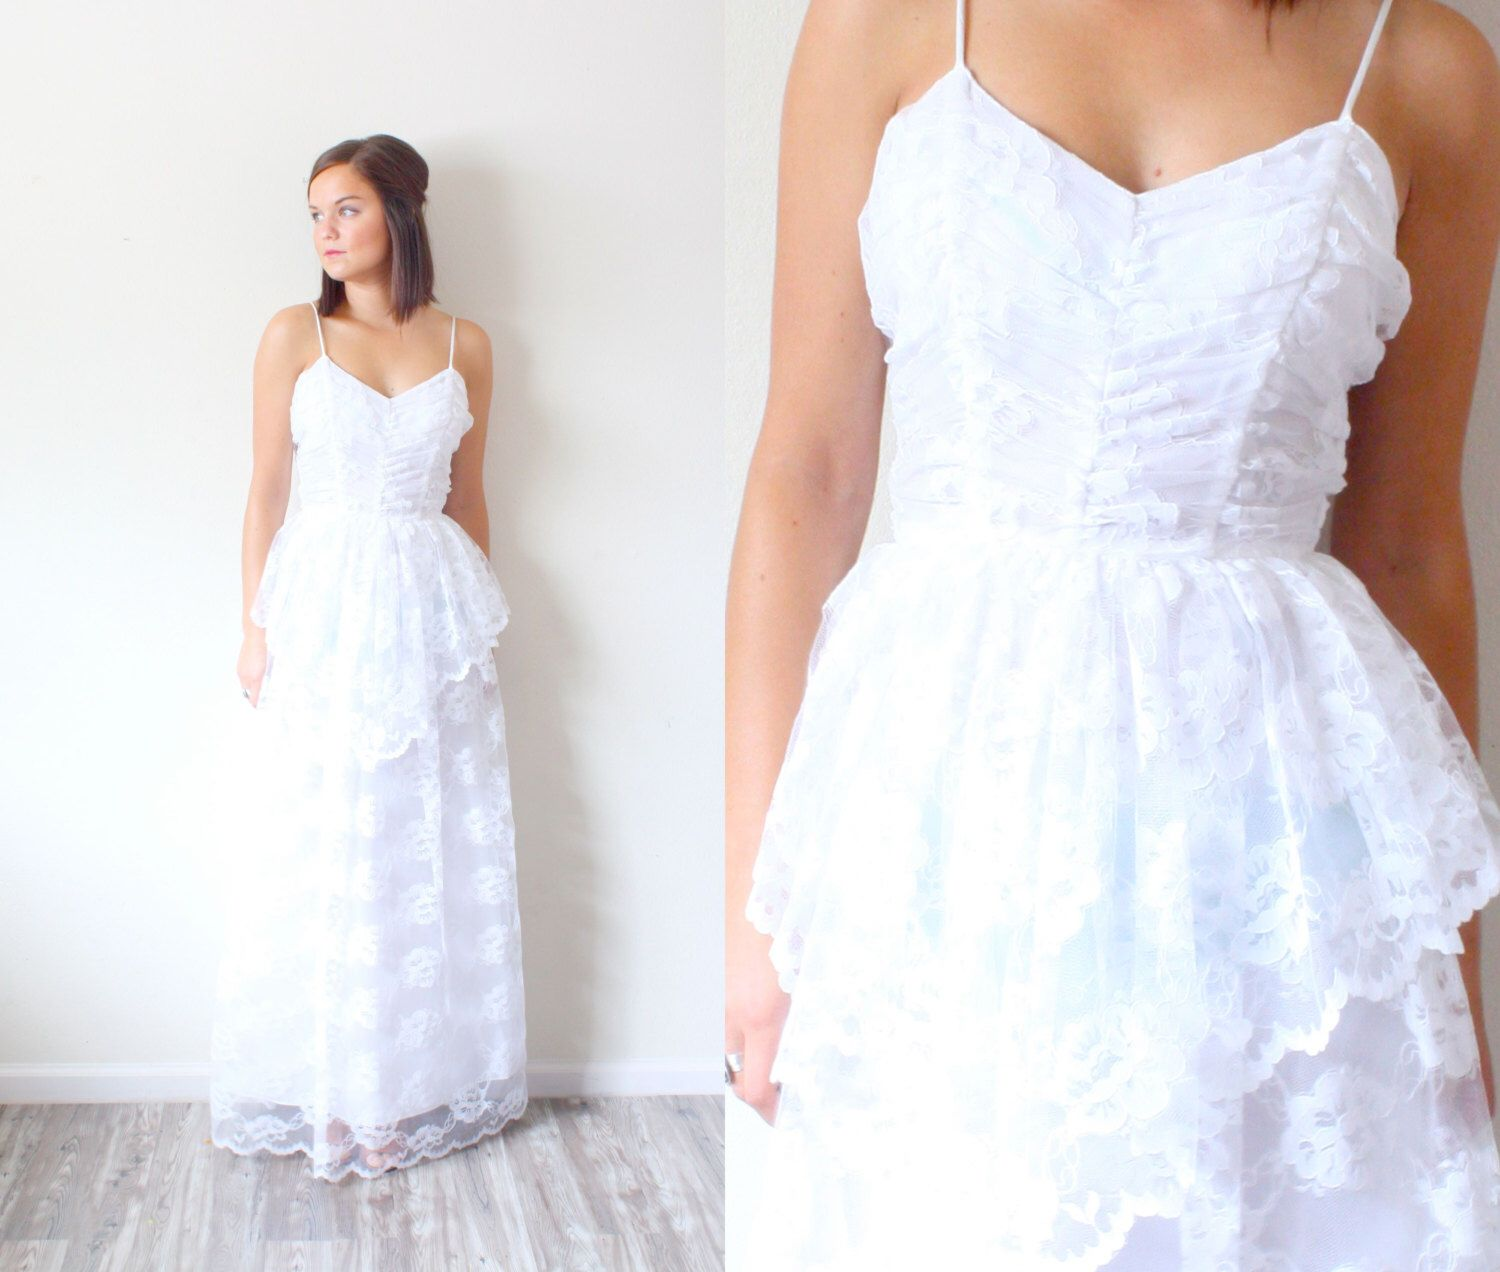 Retro wedding dress  Vintage Wedding dress  All lace wedding dress  Floor length